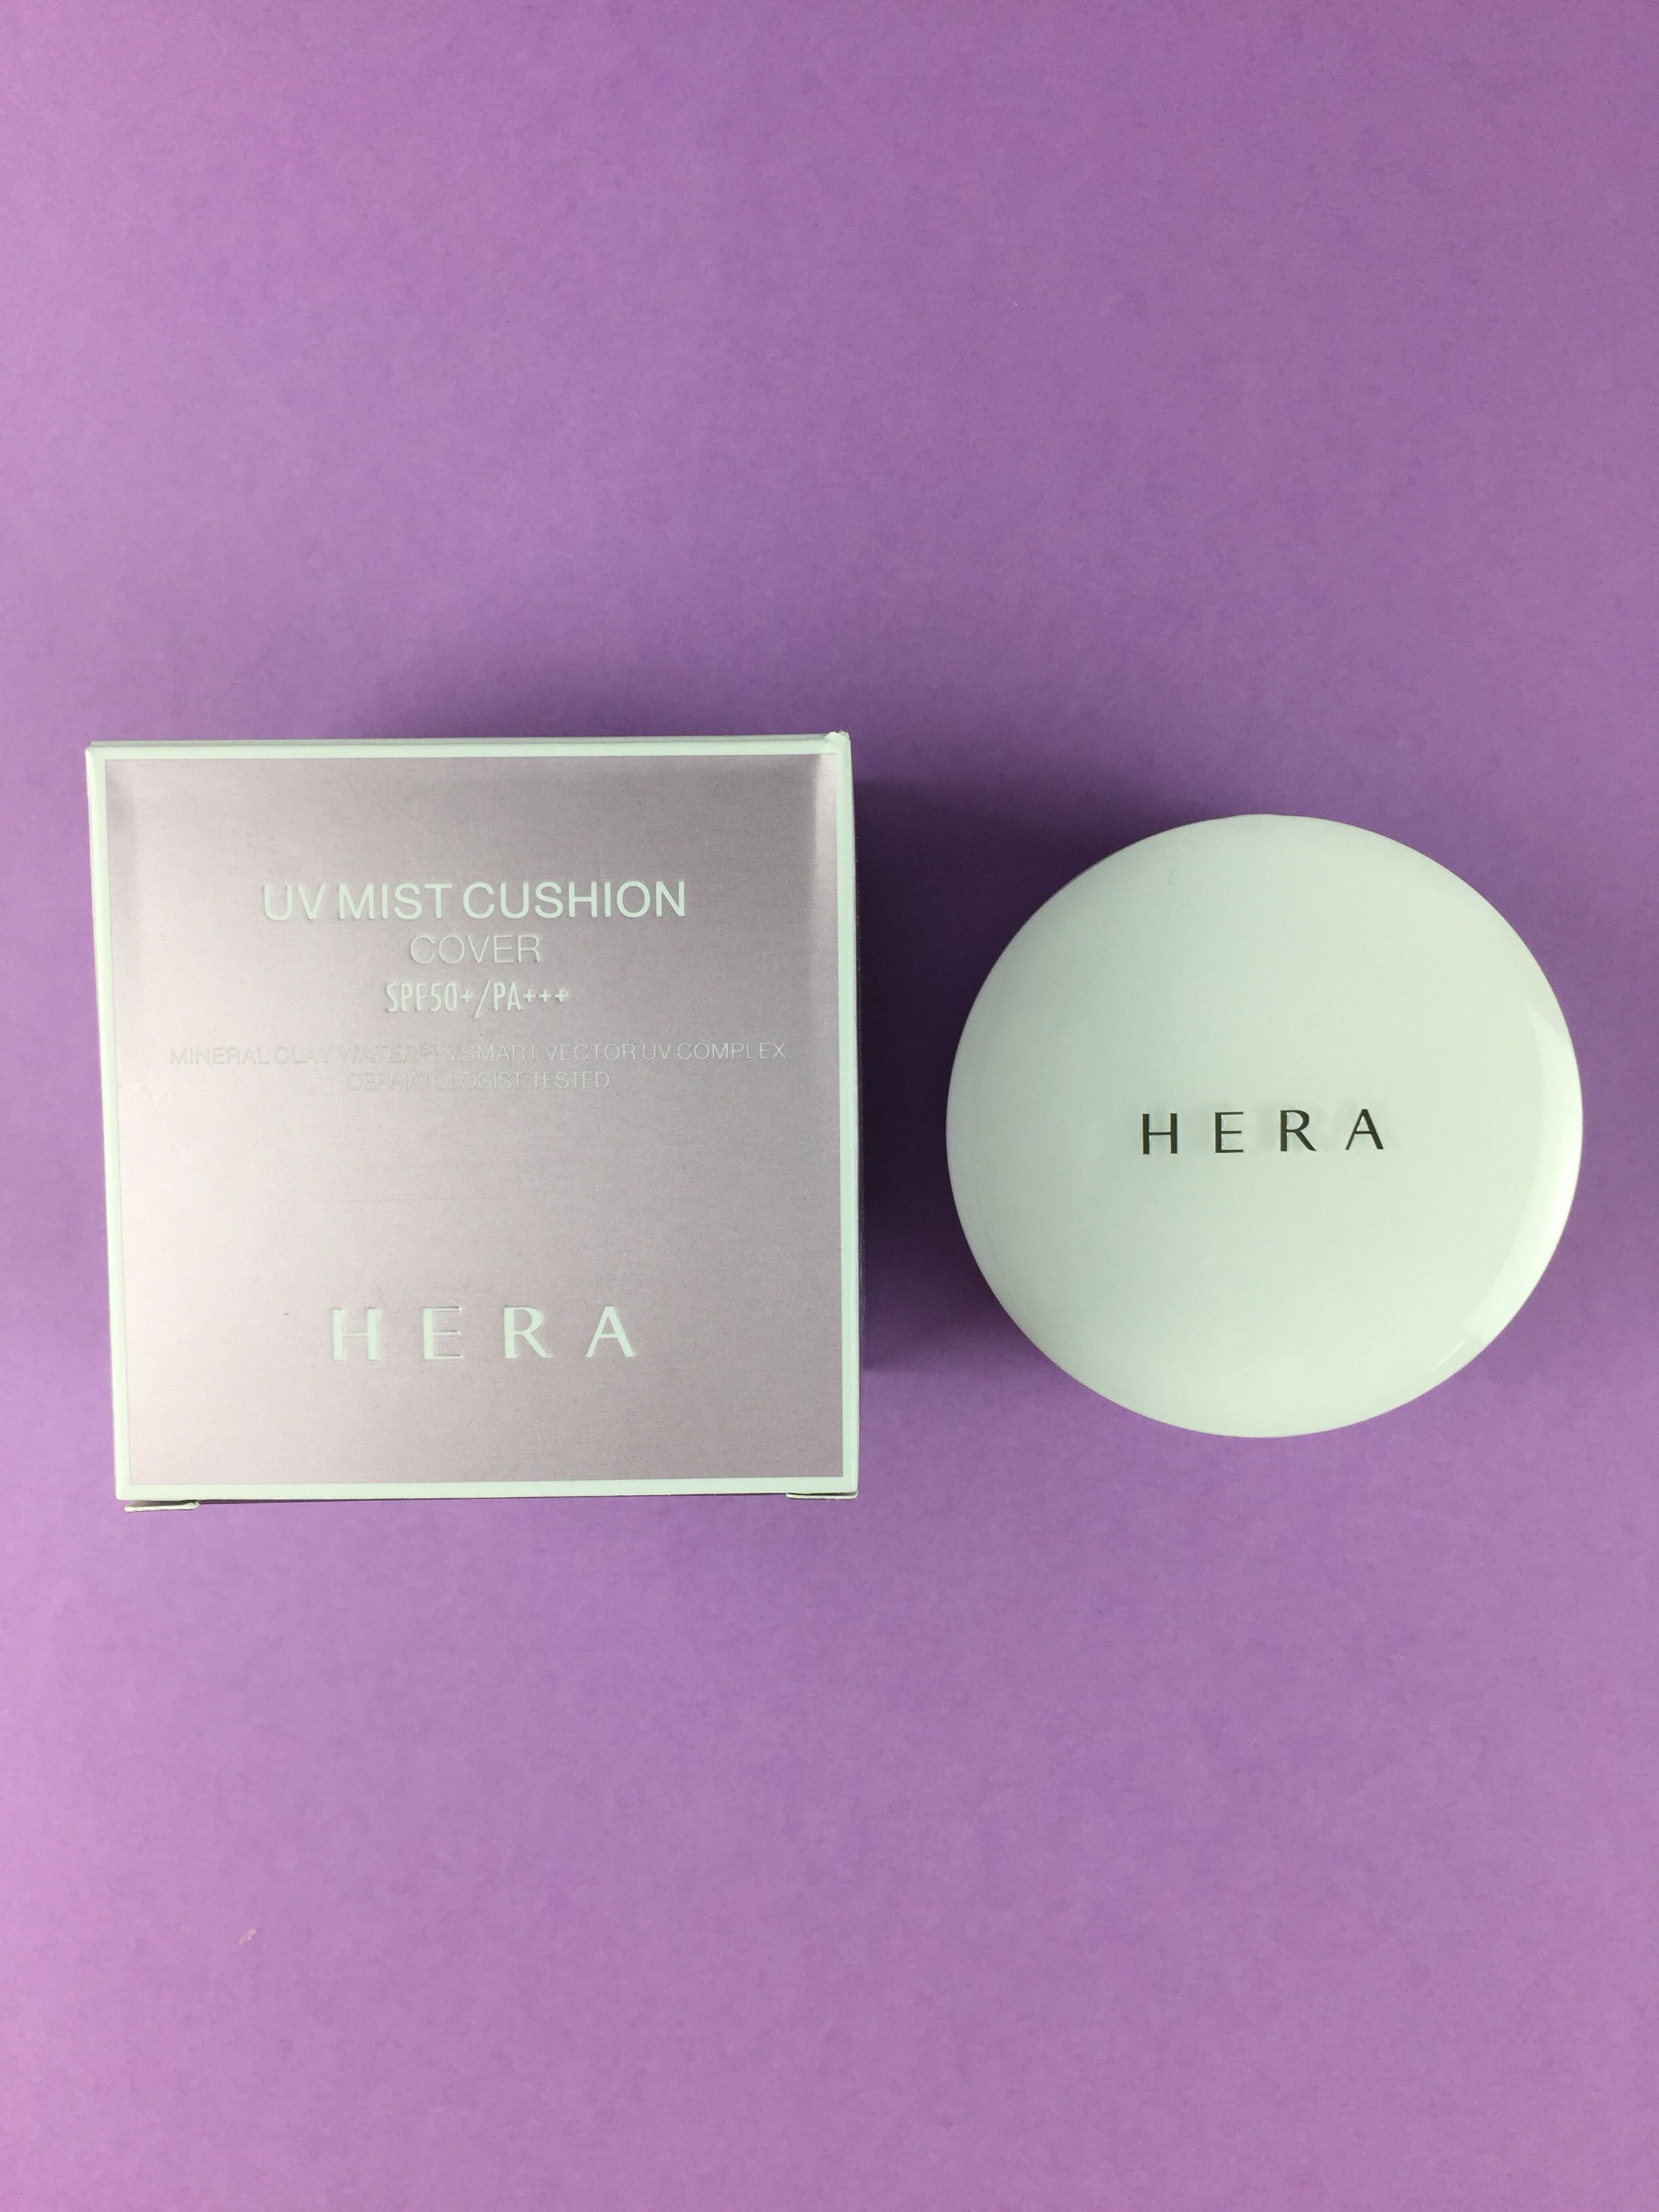 Hera Uv Mist Cushion Cover C21 15g X 2